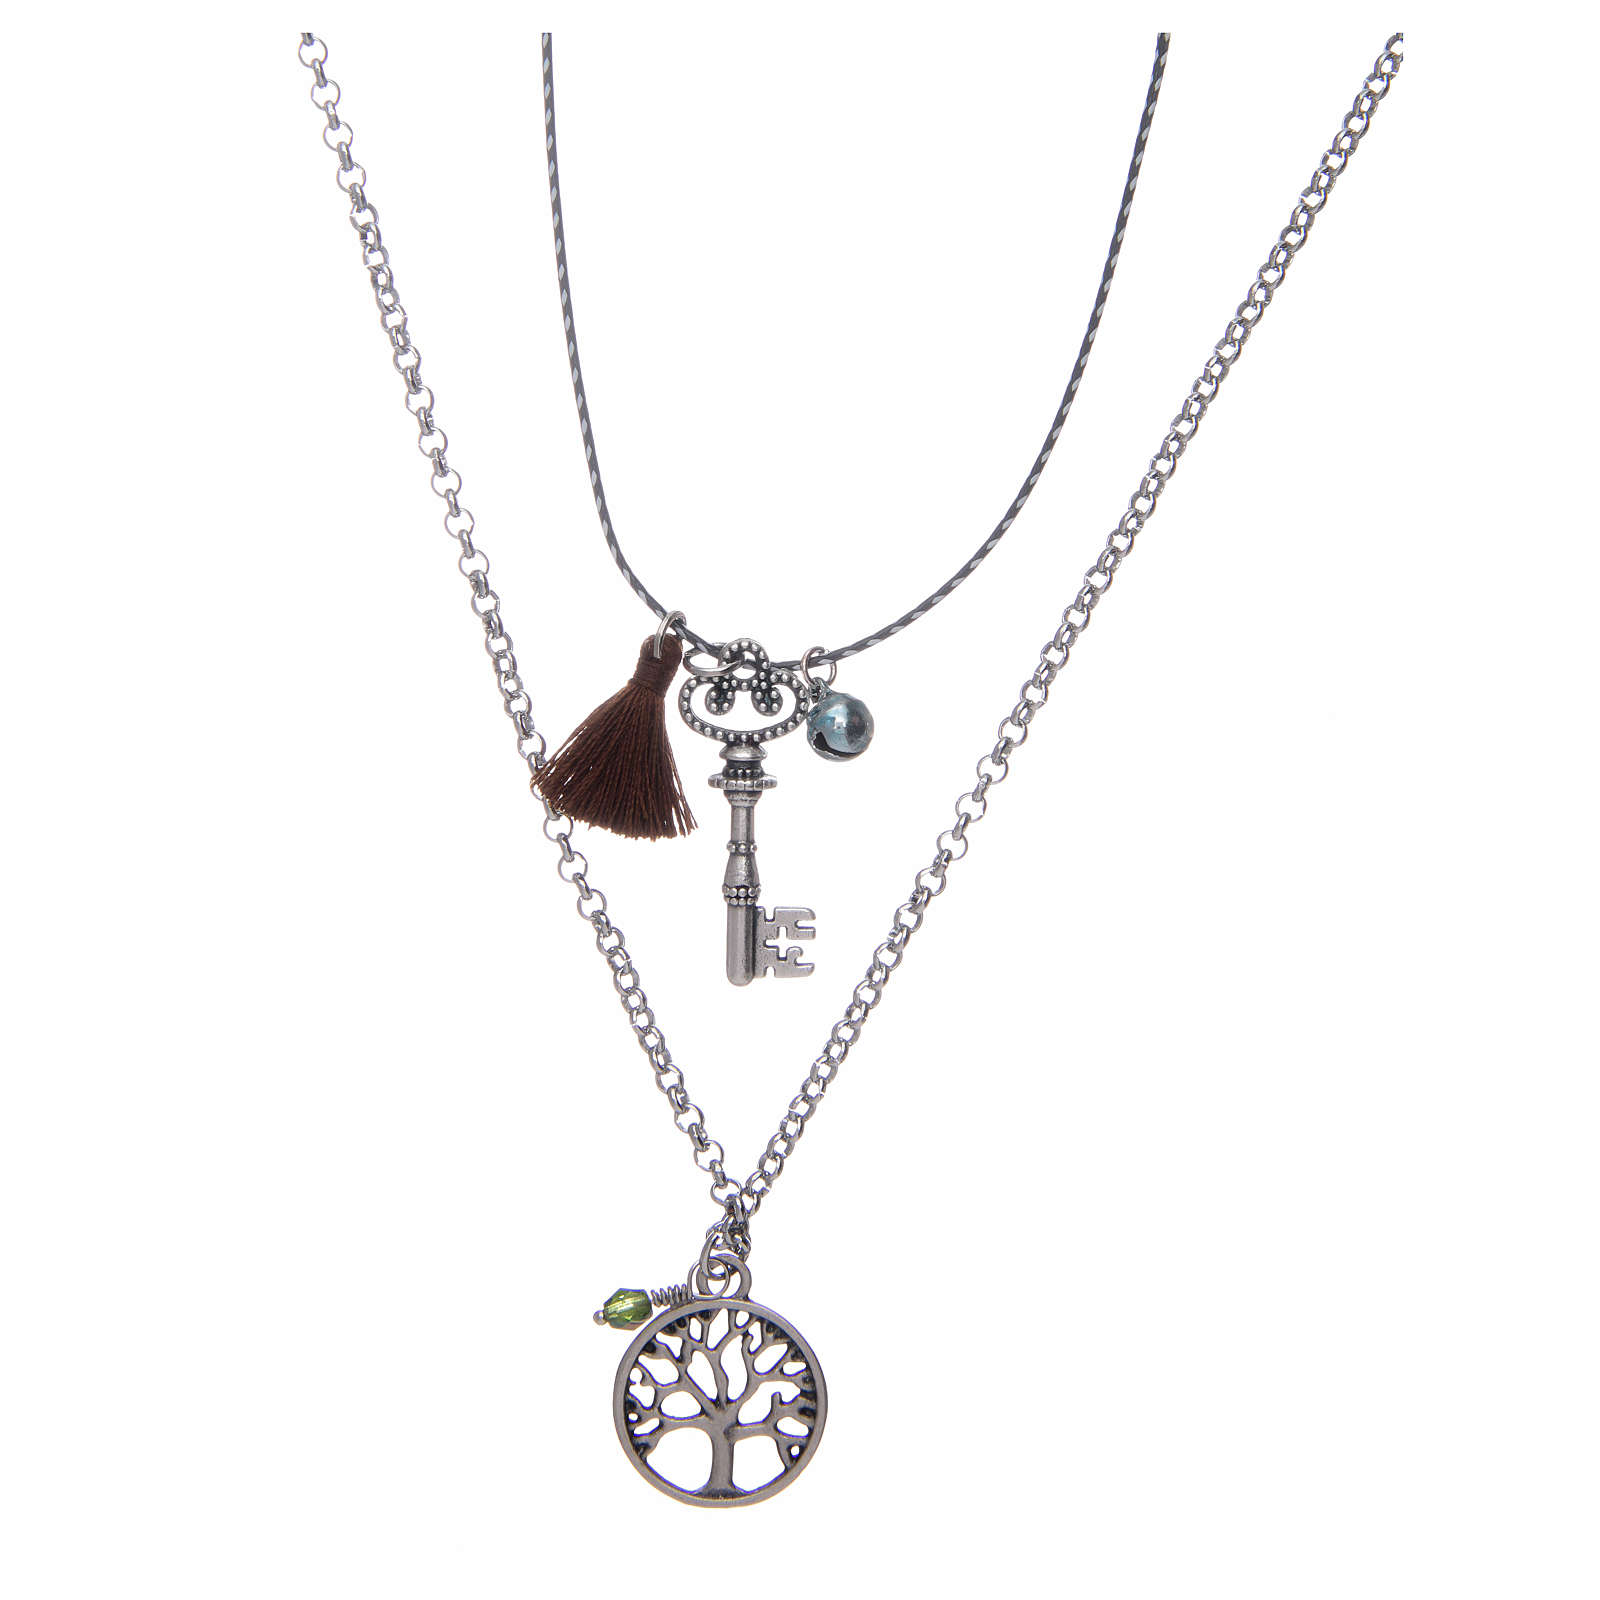 Necklace with Tree of Life and brown tassel 4